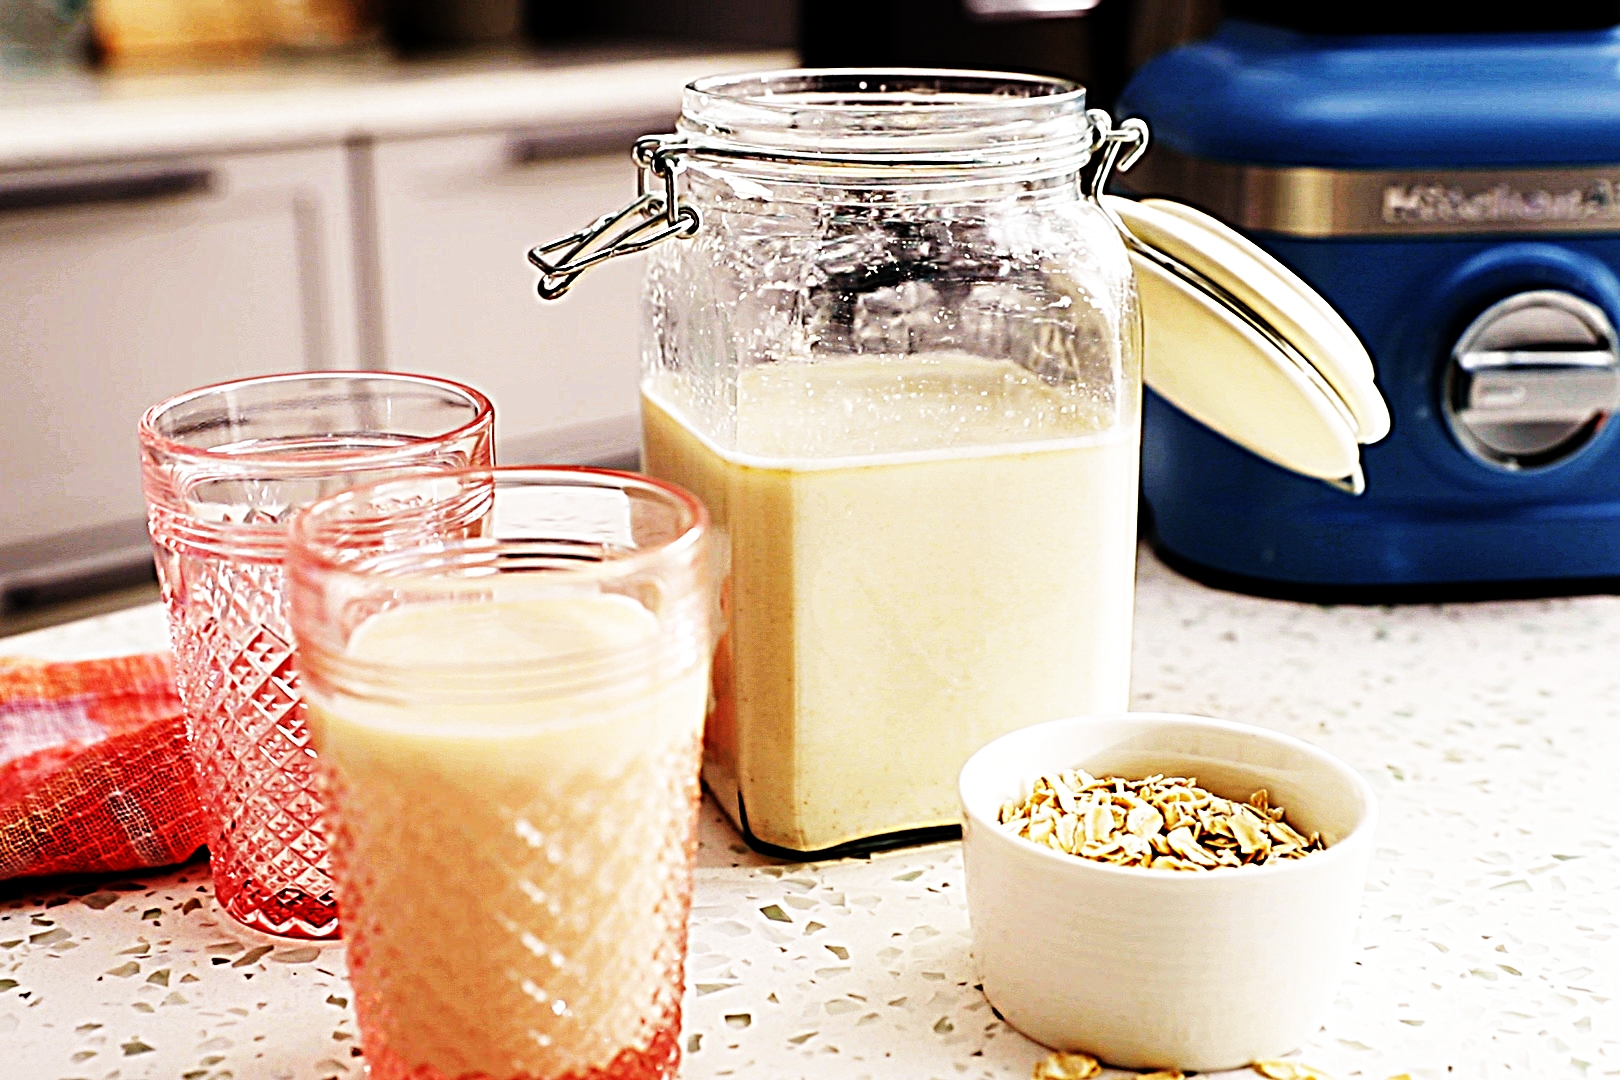 Stupid-Easy Recipe for Extra-Creamy Oat Milk (#1 Top-Rated)